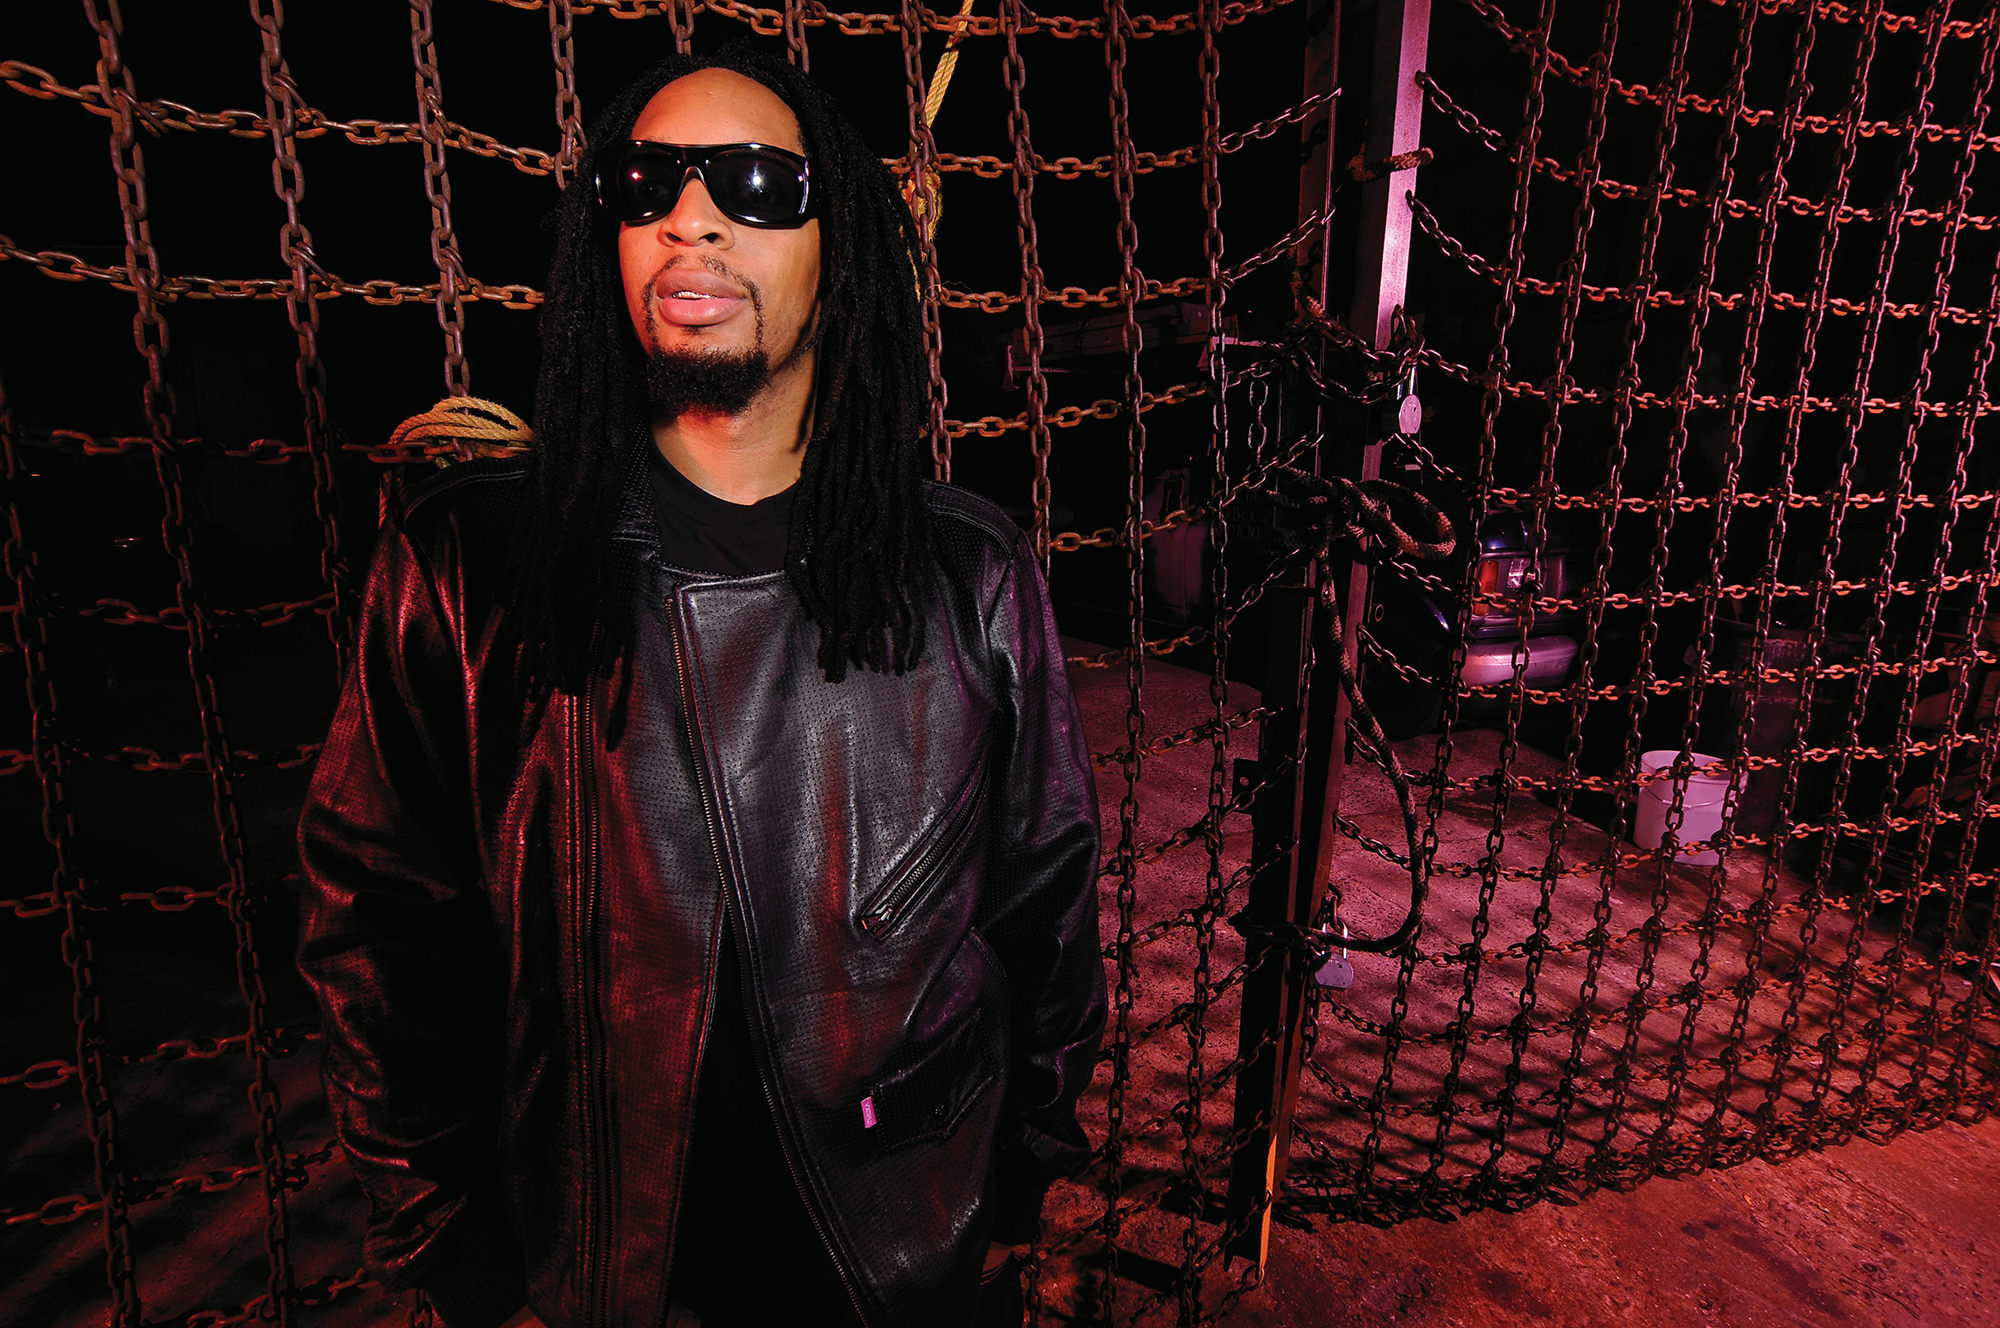 Lil Jon Wallpapers Images Photos Pictures Backgrounds 2000x1328